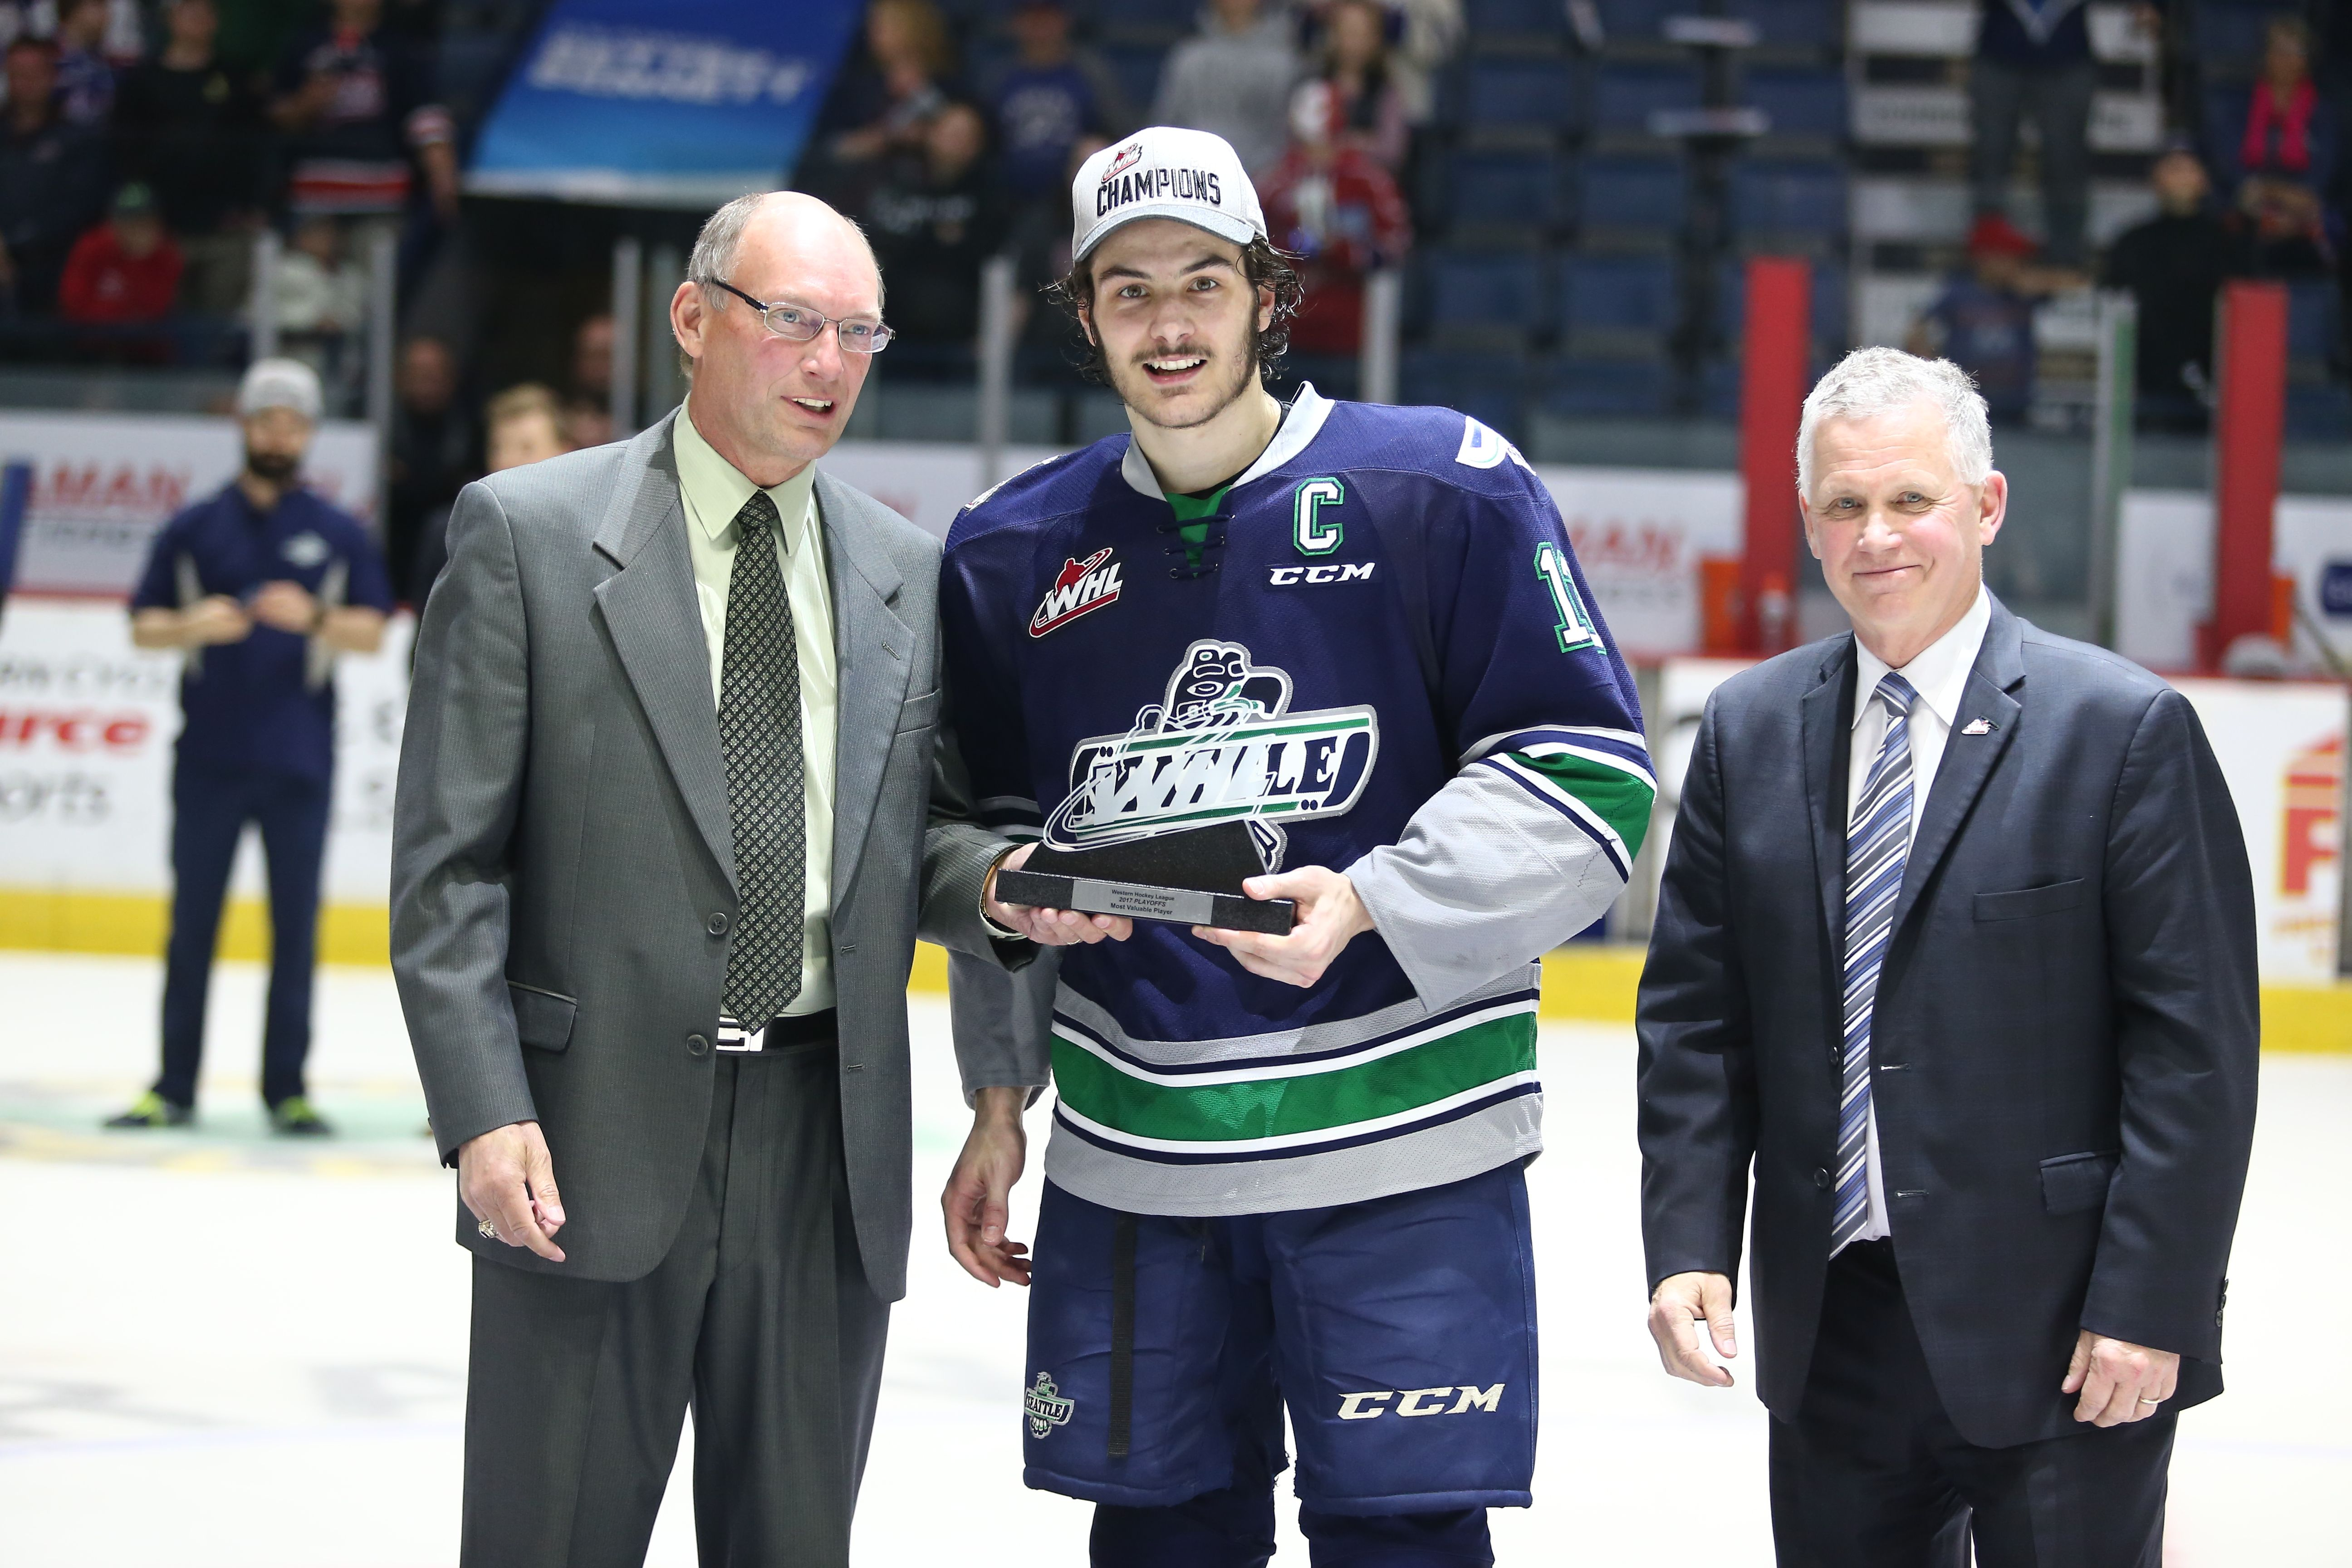 sale retailer 5ca32 d662f Mathew Barzal posing with the 2017 Western Hockey League ...